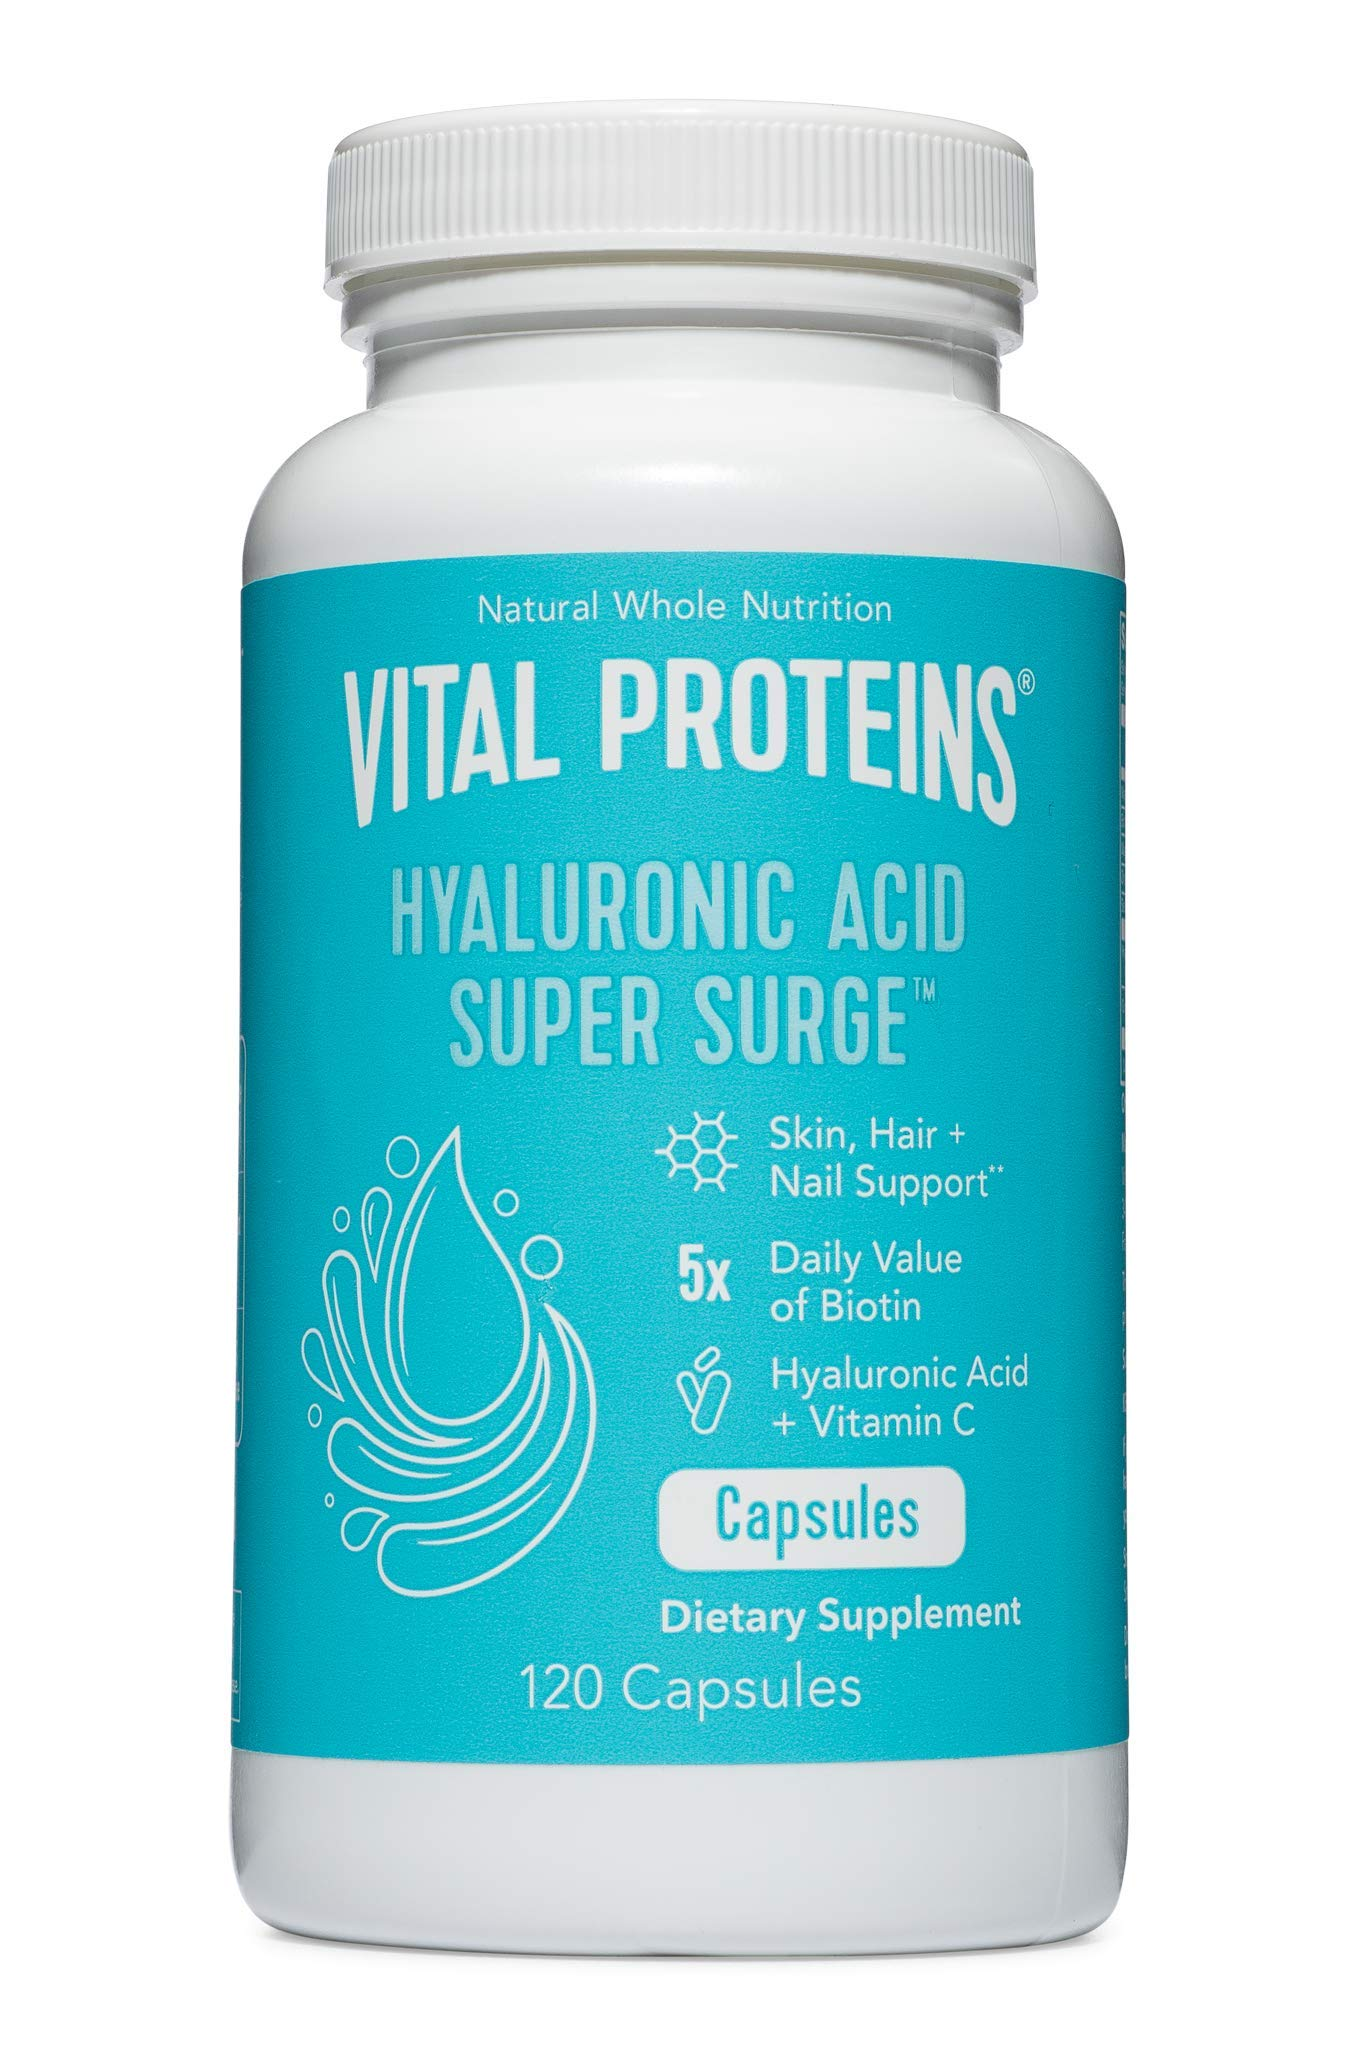 Vital Proteins Hyaluronic Acid Capsule Pills - 120mg of Hyaluronic Acid, 150 mcg of Biotin, and 180mg of Vitamin C